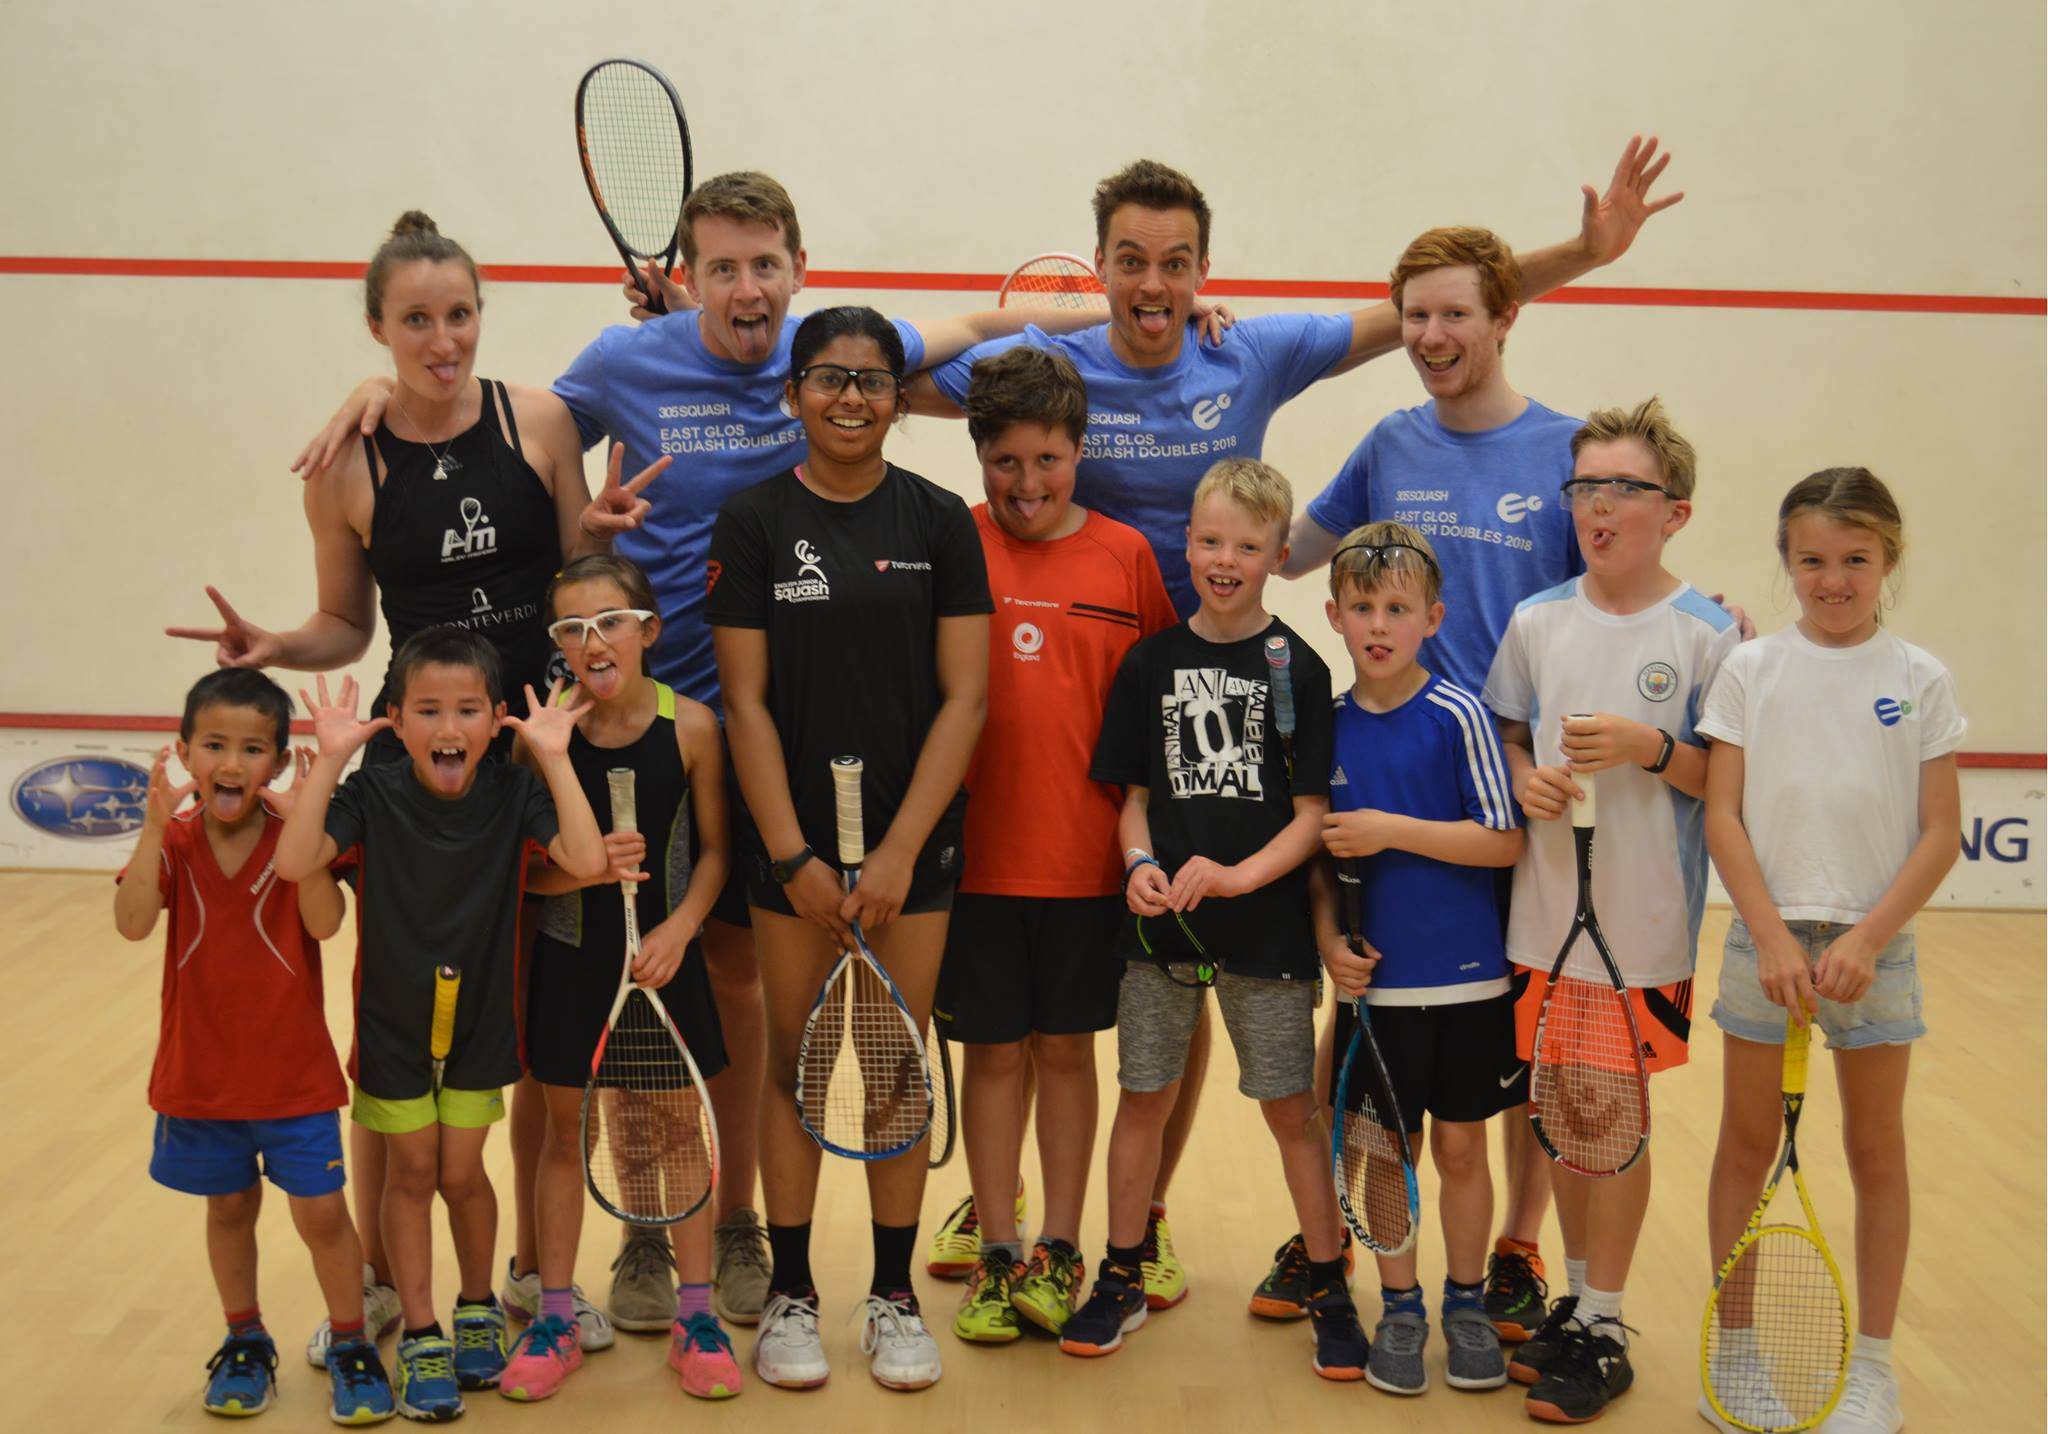 Reflections on six years of the East Glos Squash Doubles Tournament